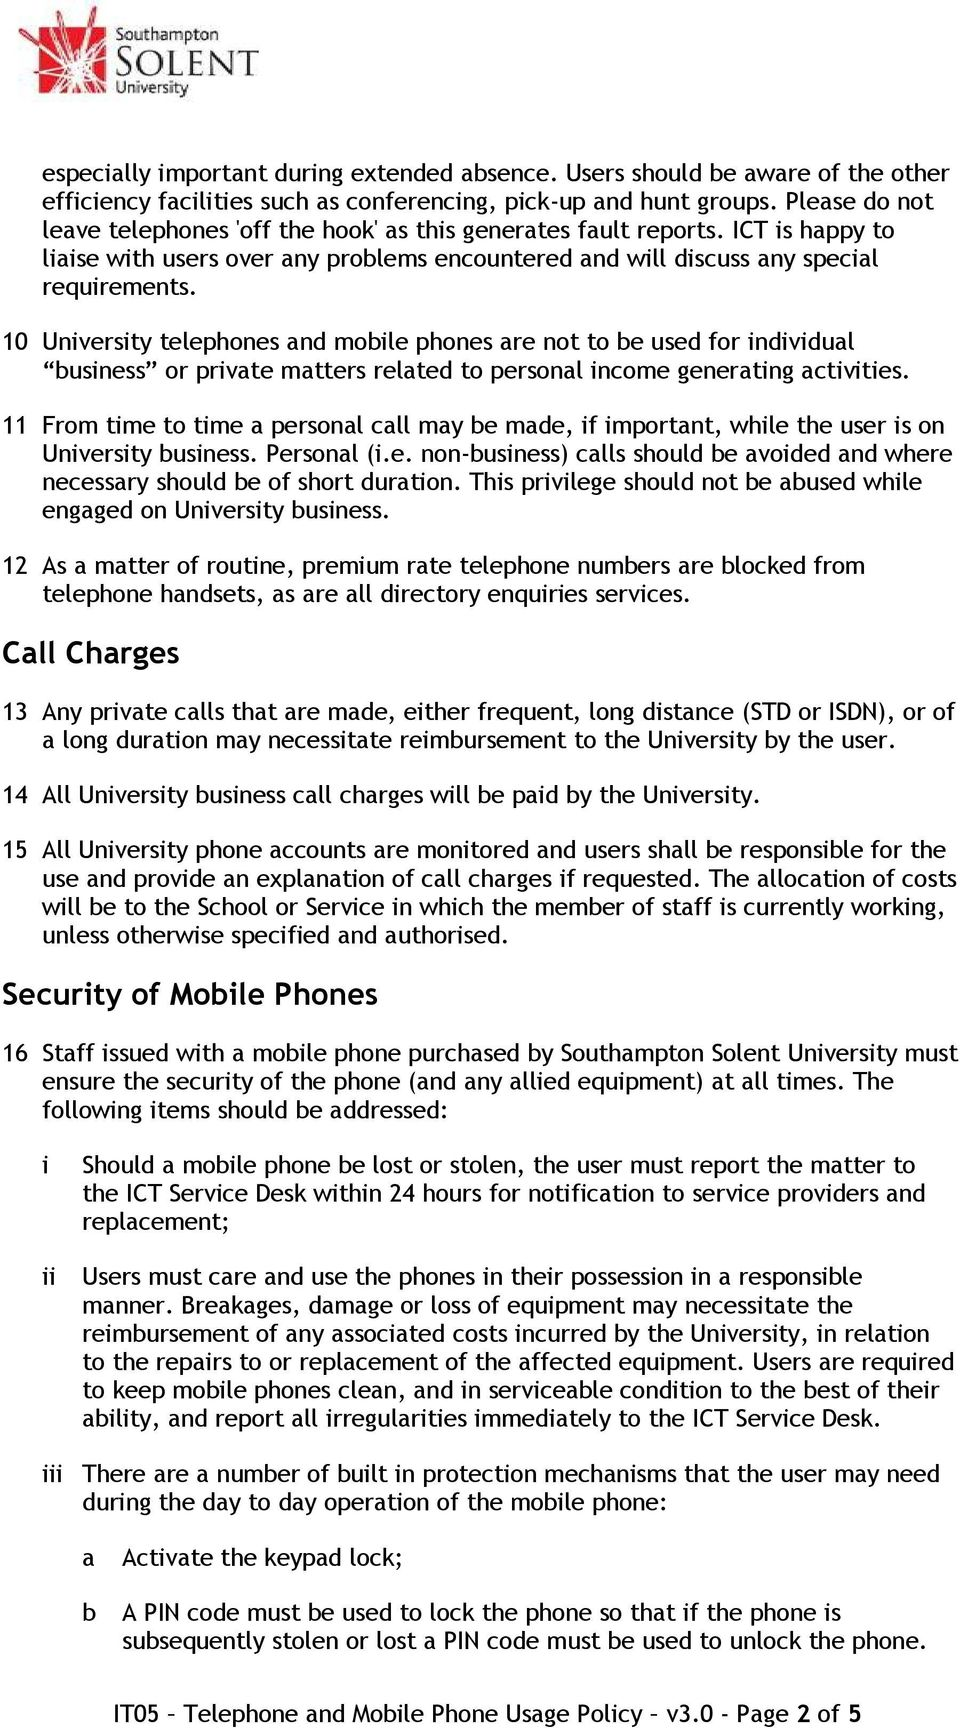 10 Unersty telephones nd moble phones re not to be used for nddul busness or prte mtters relted to personl ncome genertng cttes.